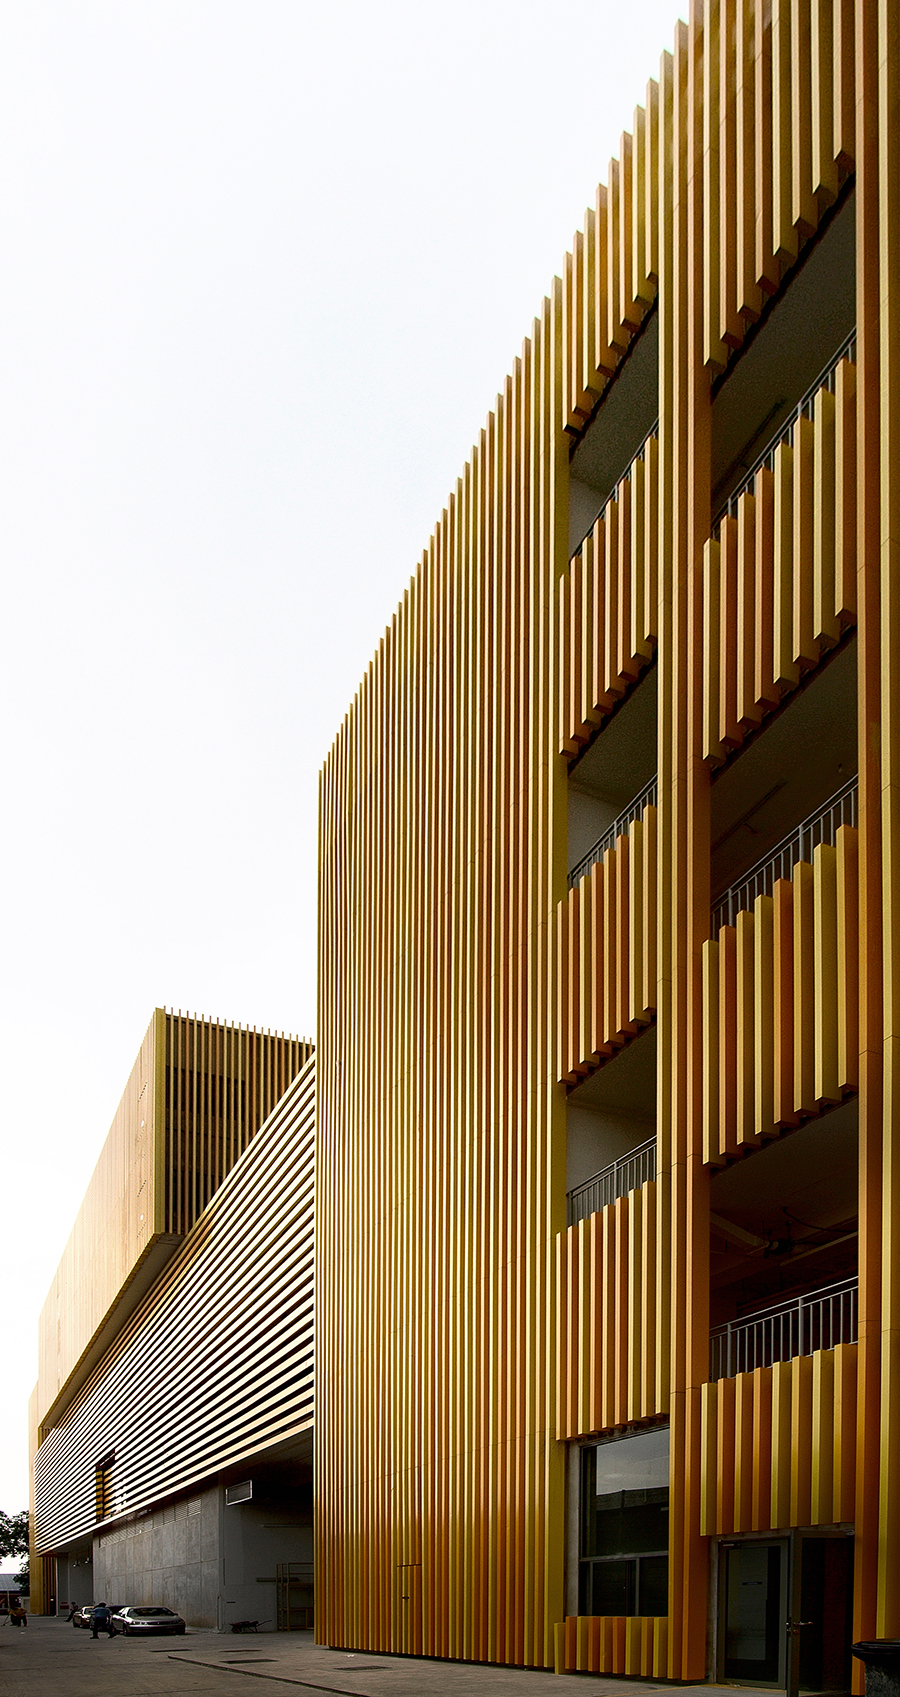 The building's stacked timber box design is a series of interconnected volumes which correspond to their interior functions